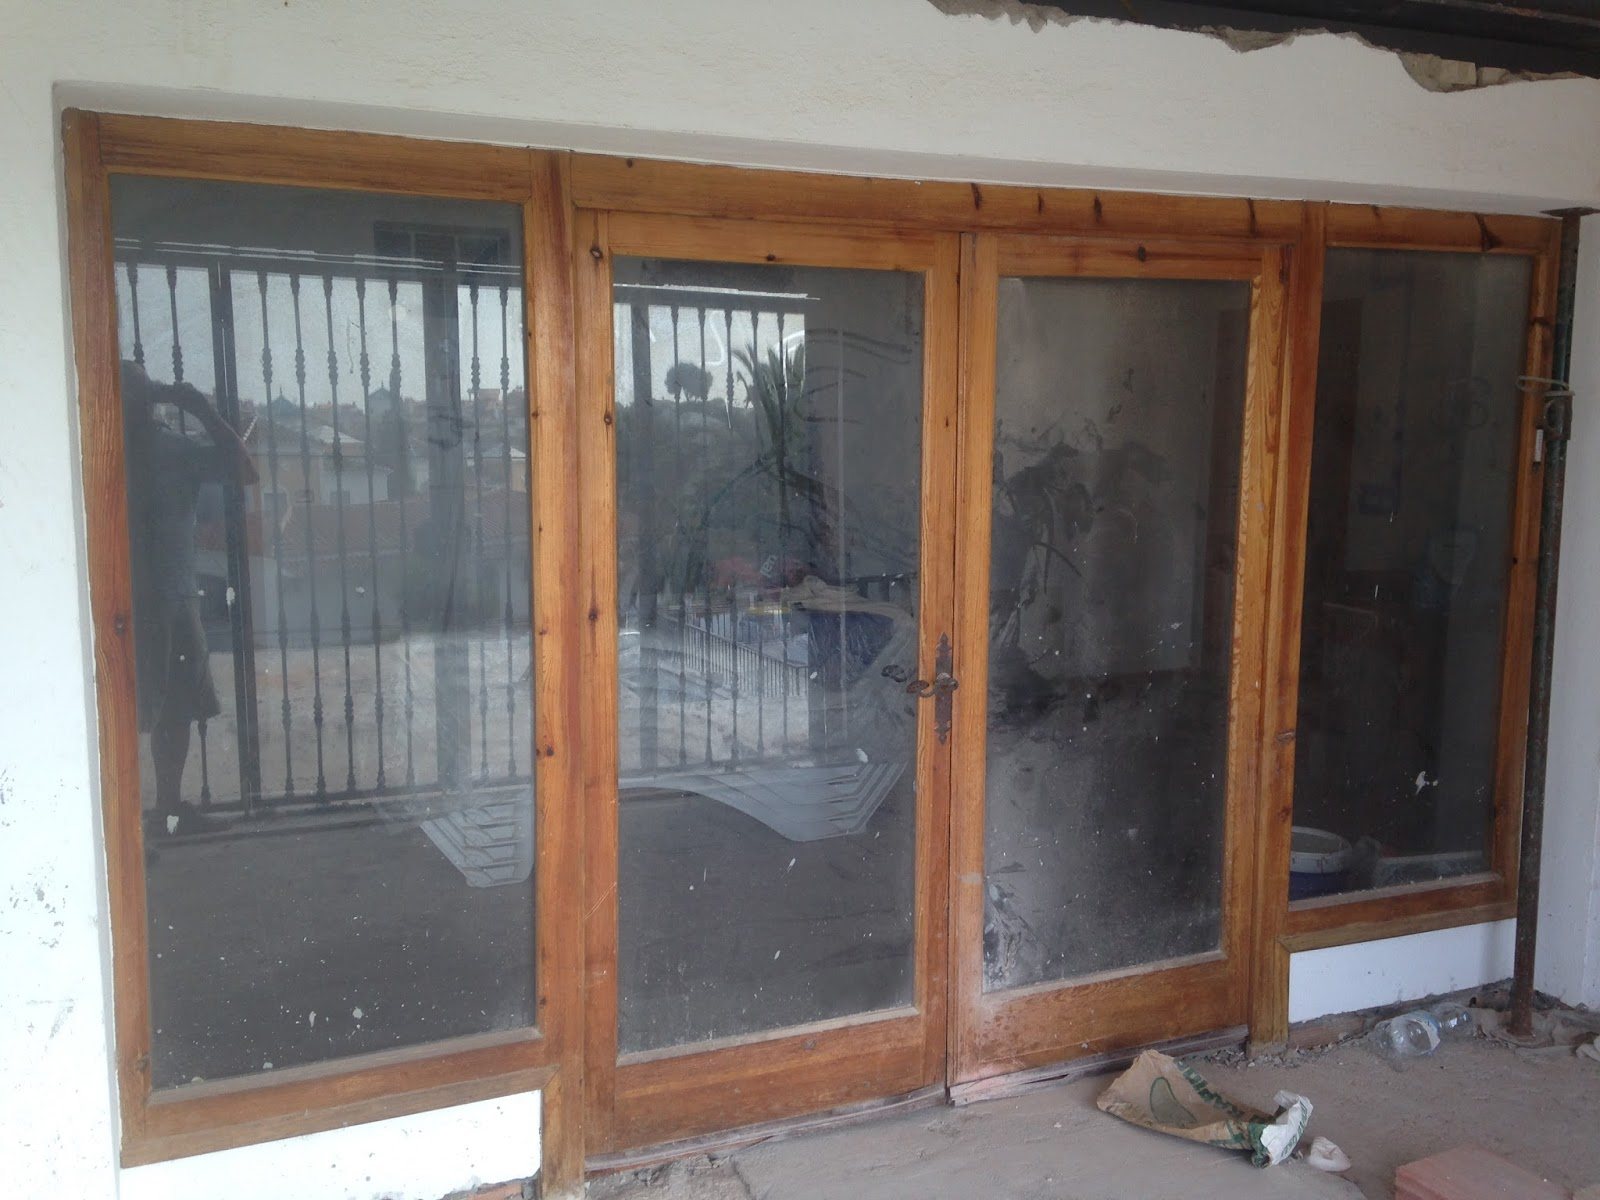 Digame for sale period patio doors for Porch doors for sale